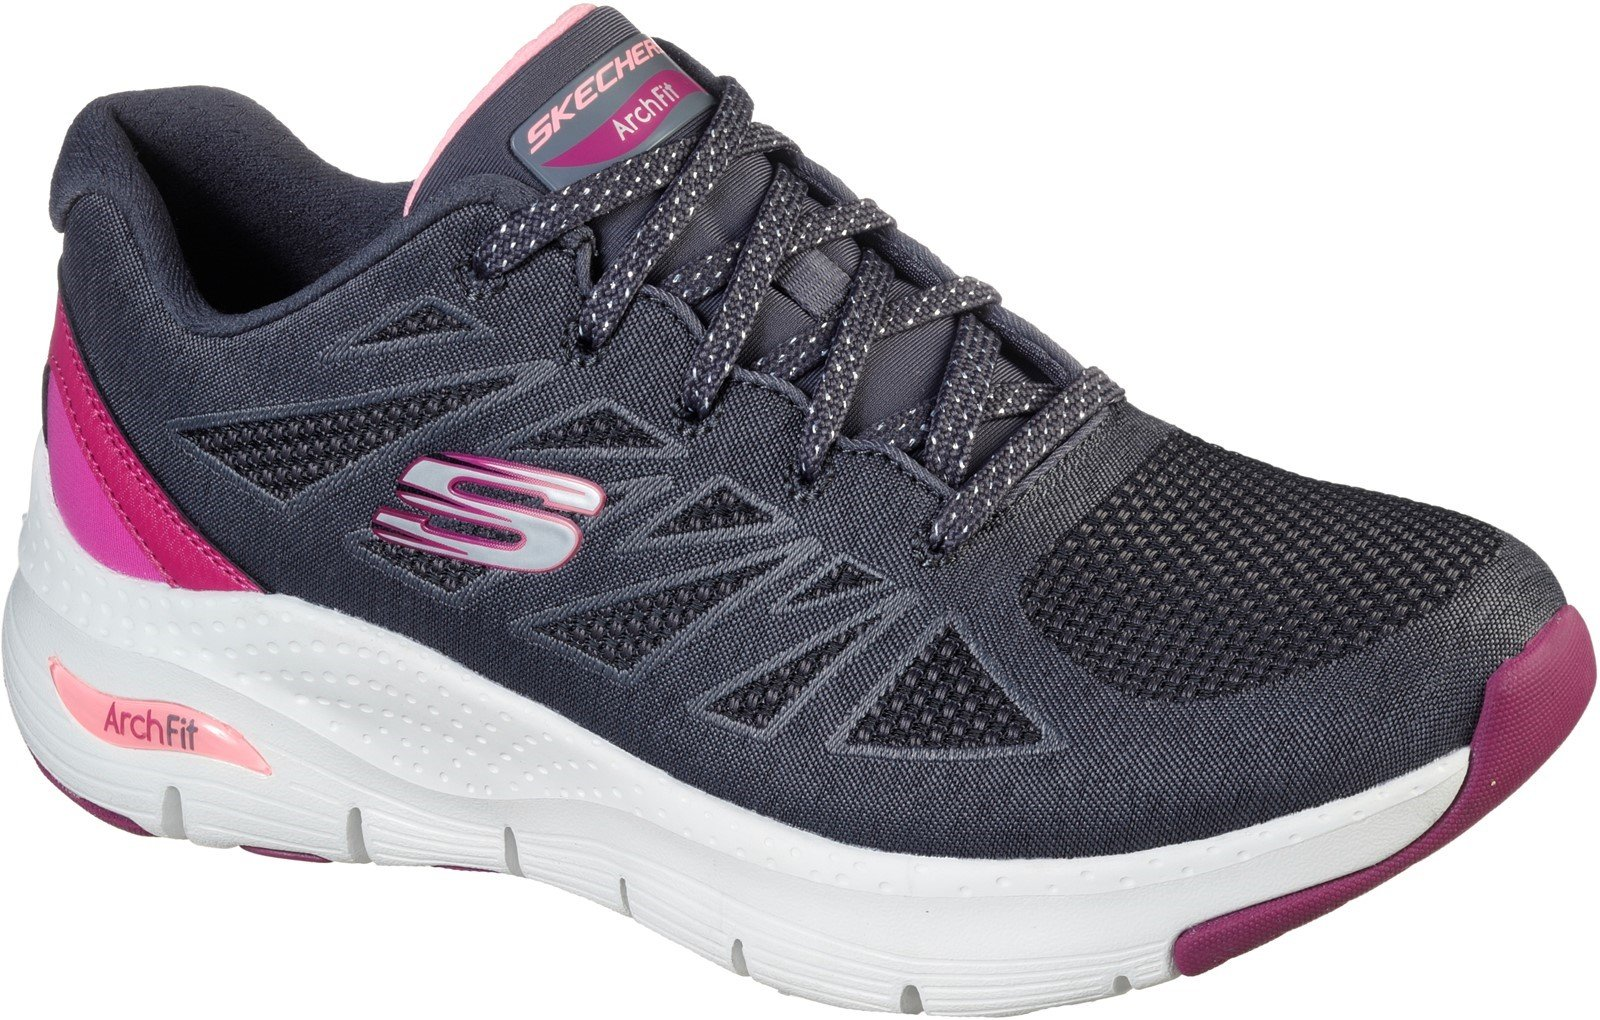 Skechers Women's Arch Fit She's Effortless Trainer Various Colours 32107 - Charcoal/Pink 3